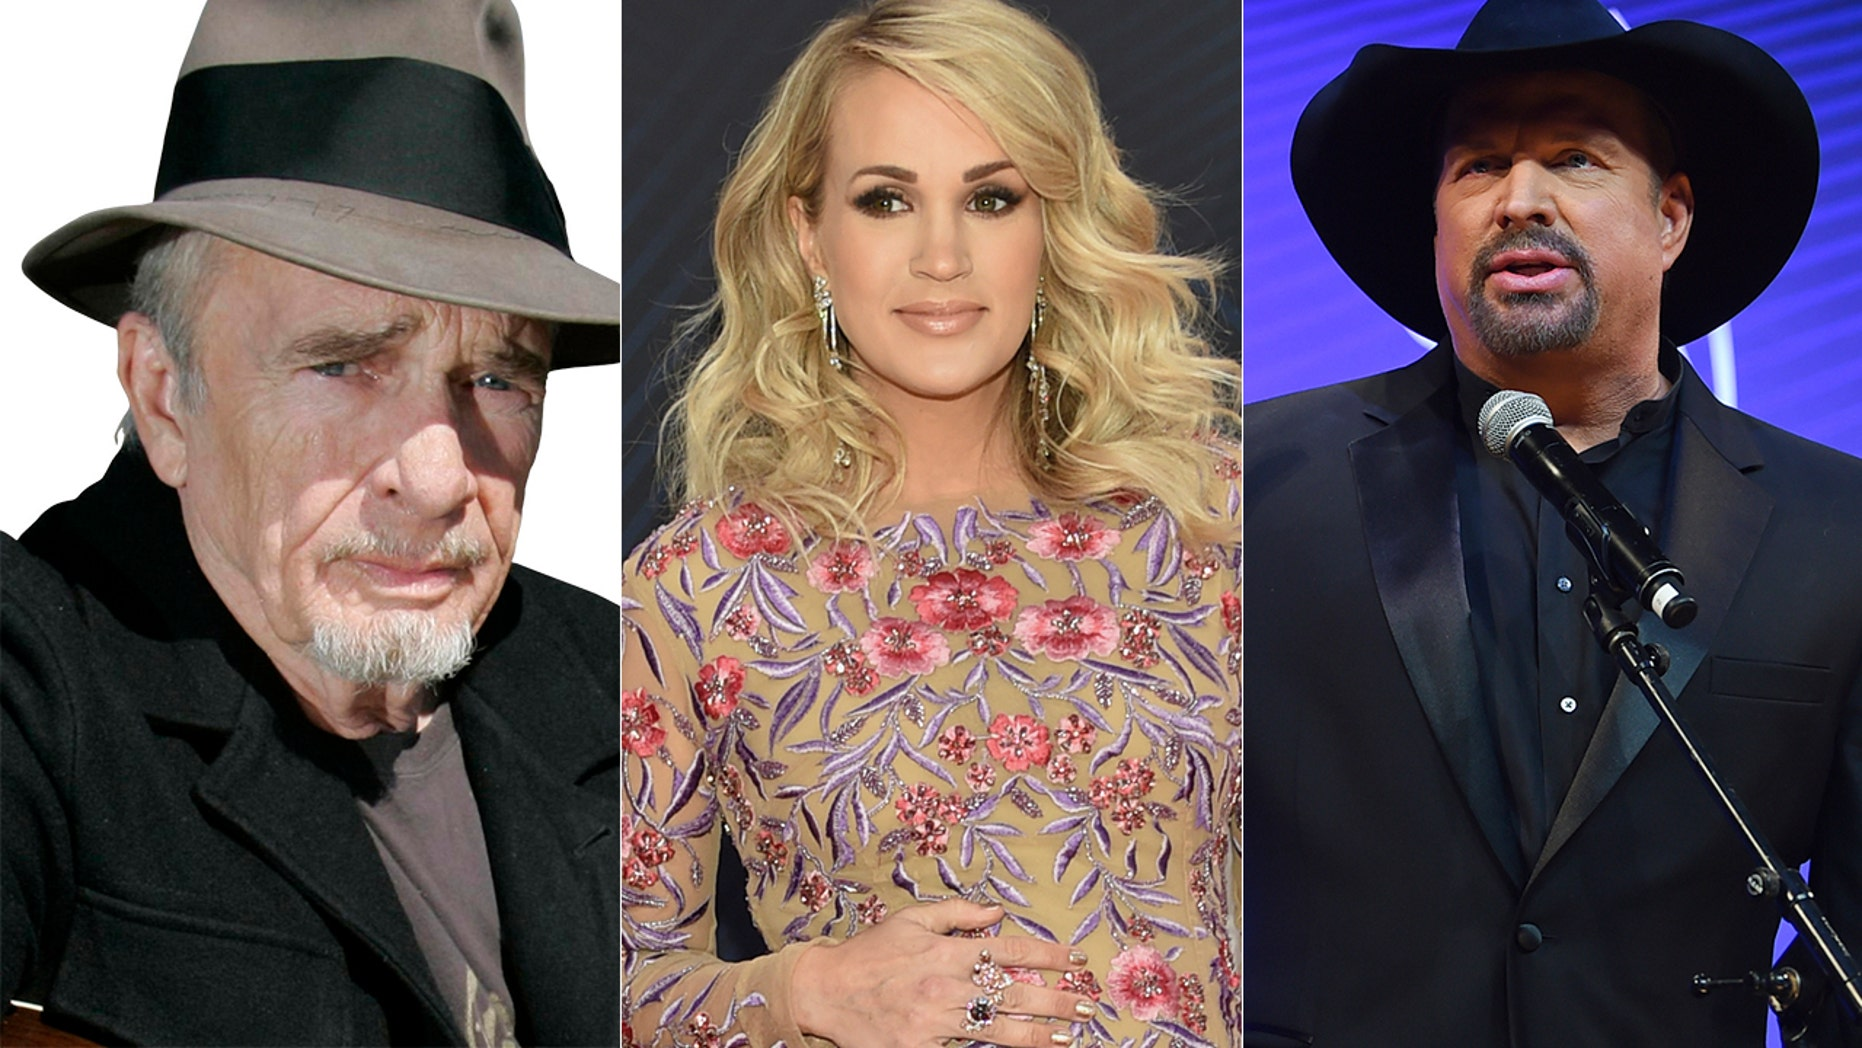 From l-r: Merle Haggard, Carrie Underwood and Garth Brooks are just a few country singers who got into trouble over their songs.